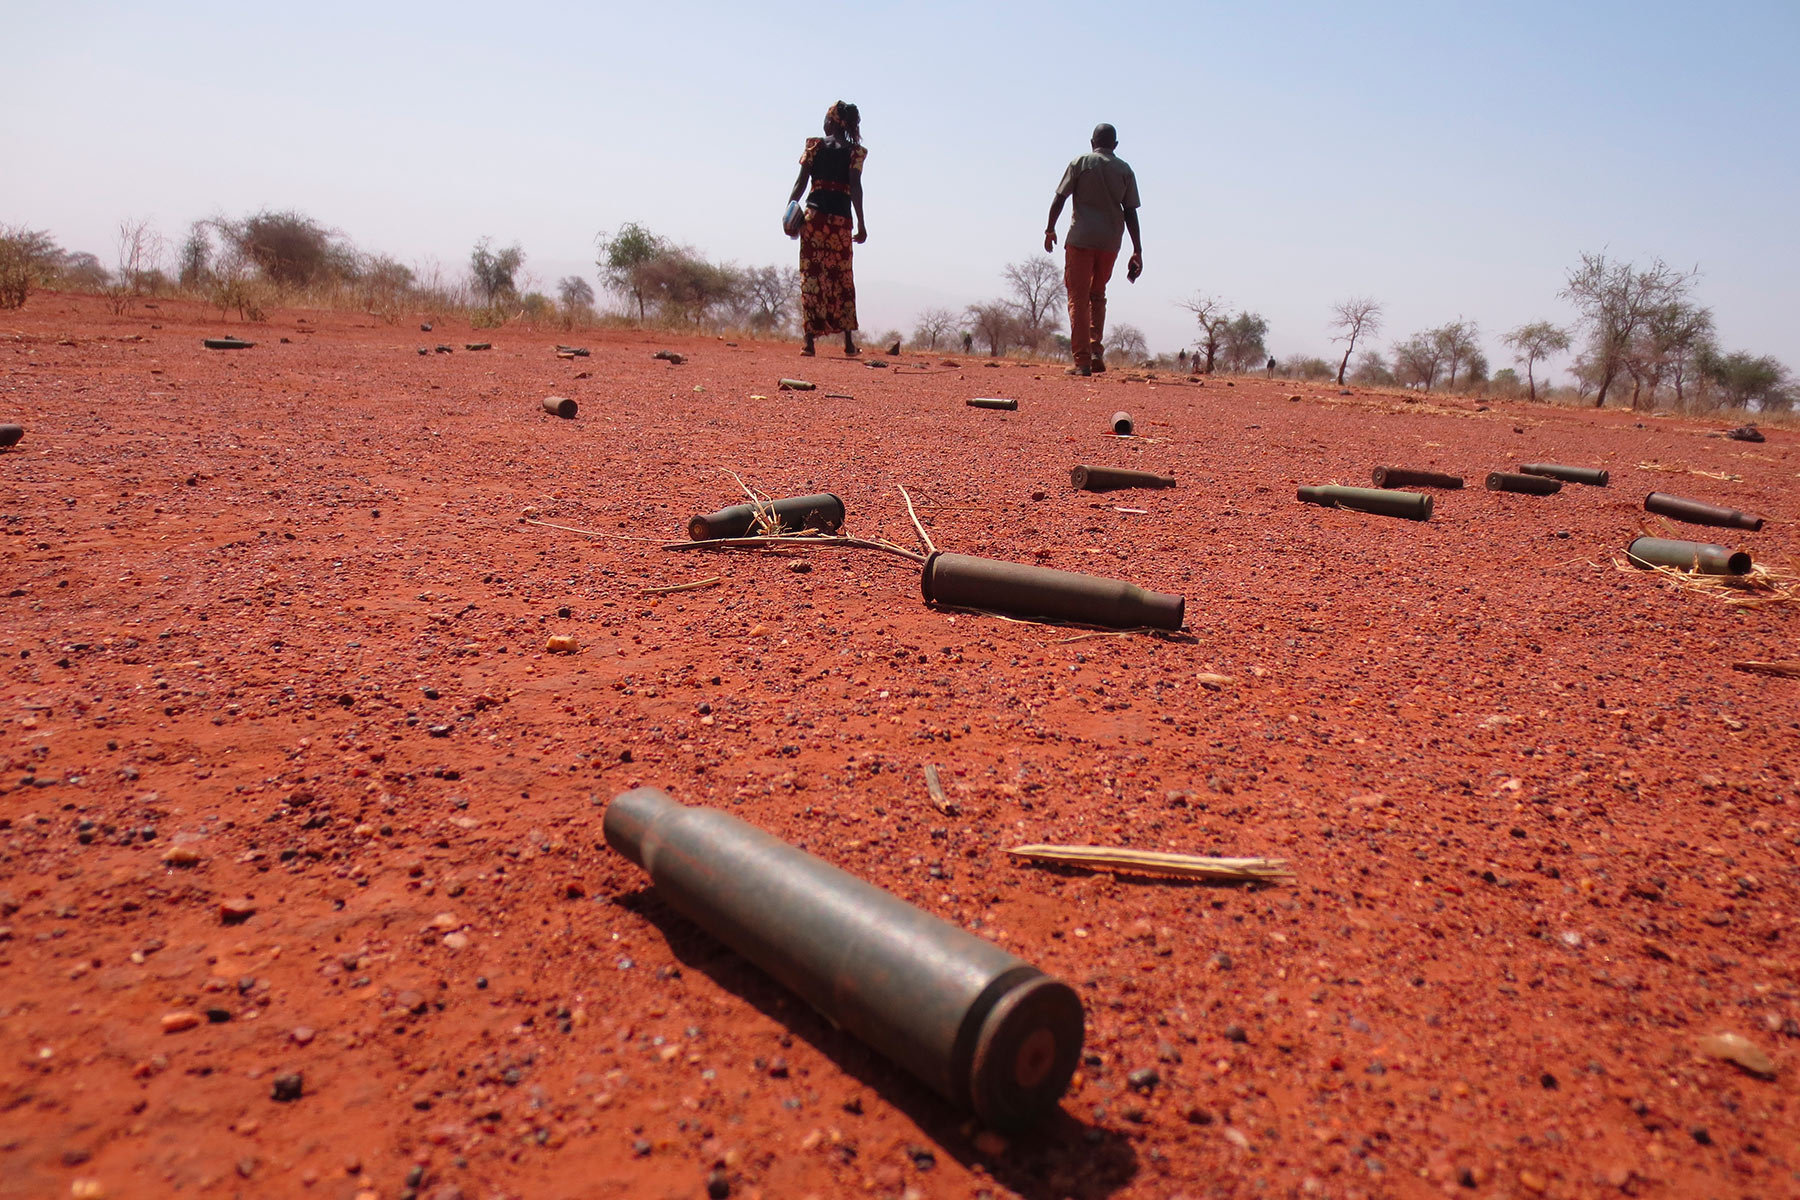 Two people walking across ground littered with bullet casings